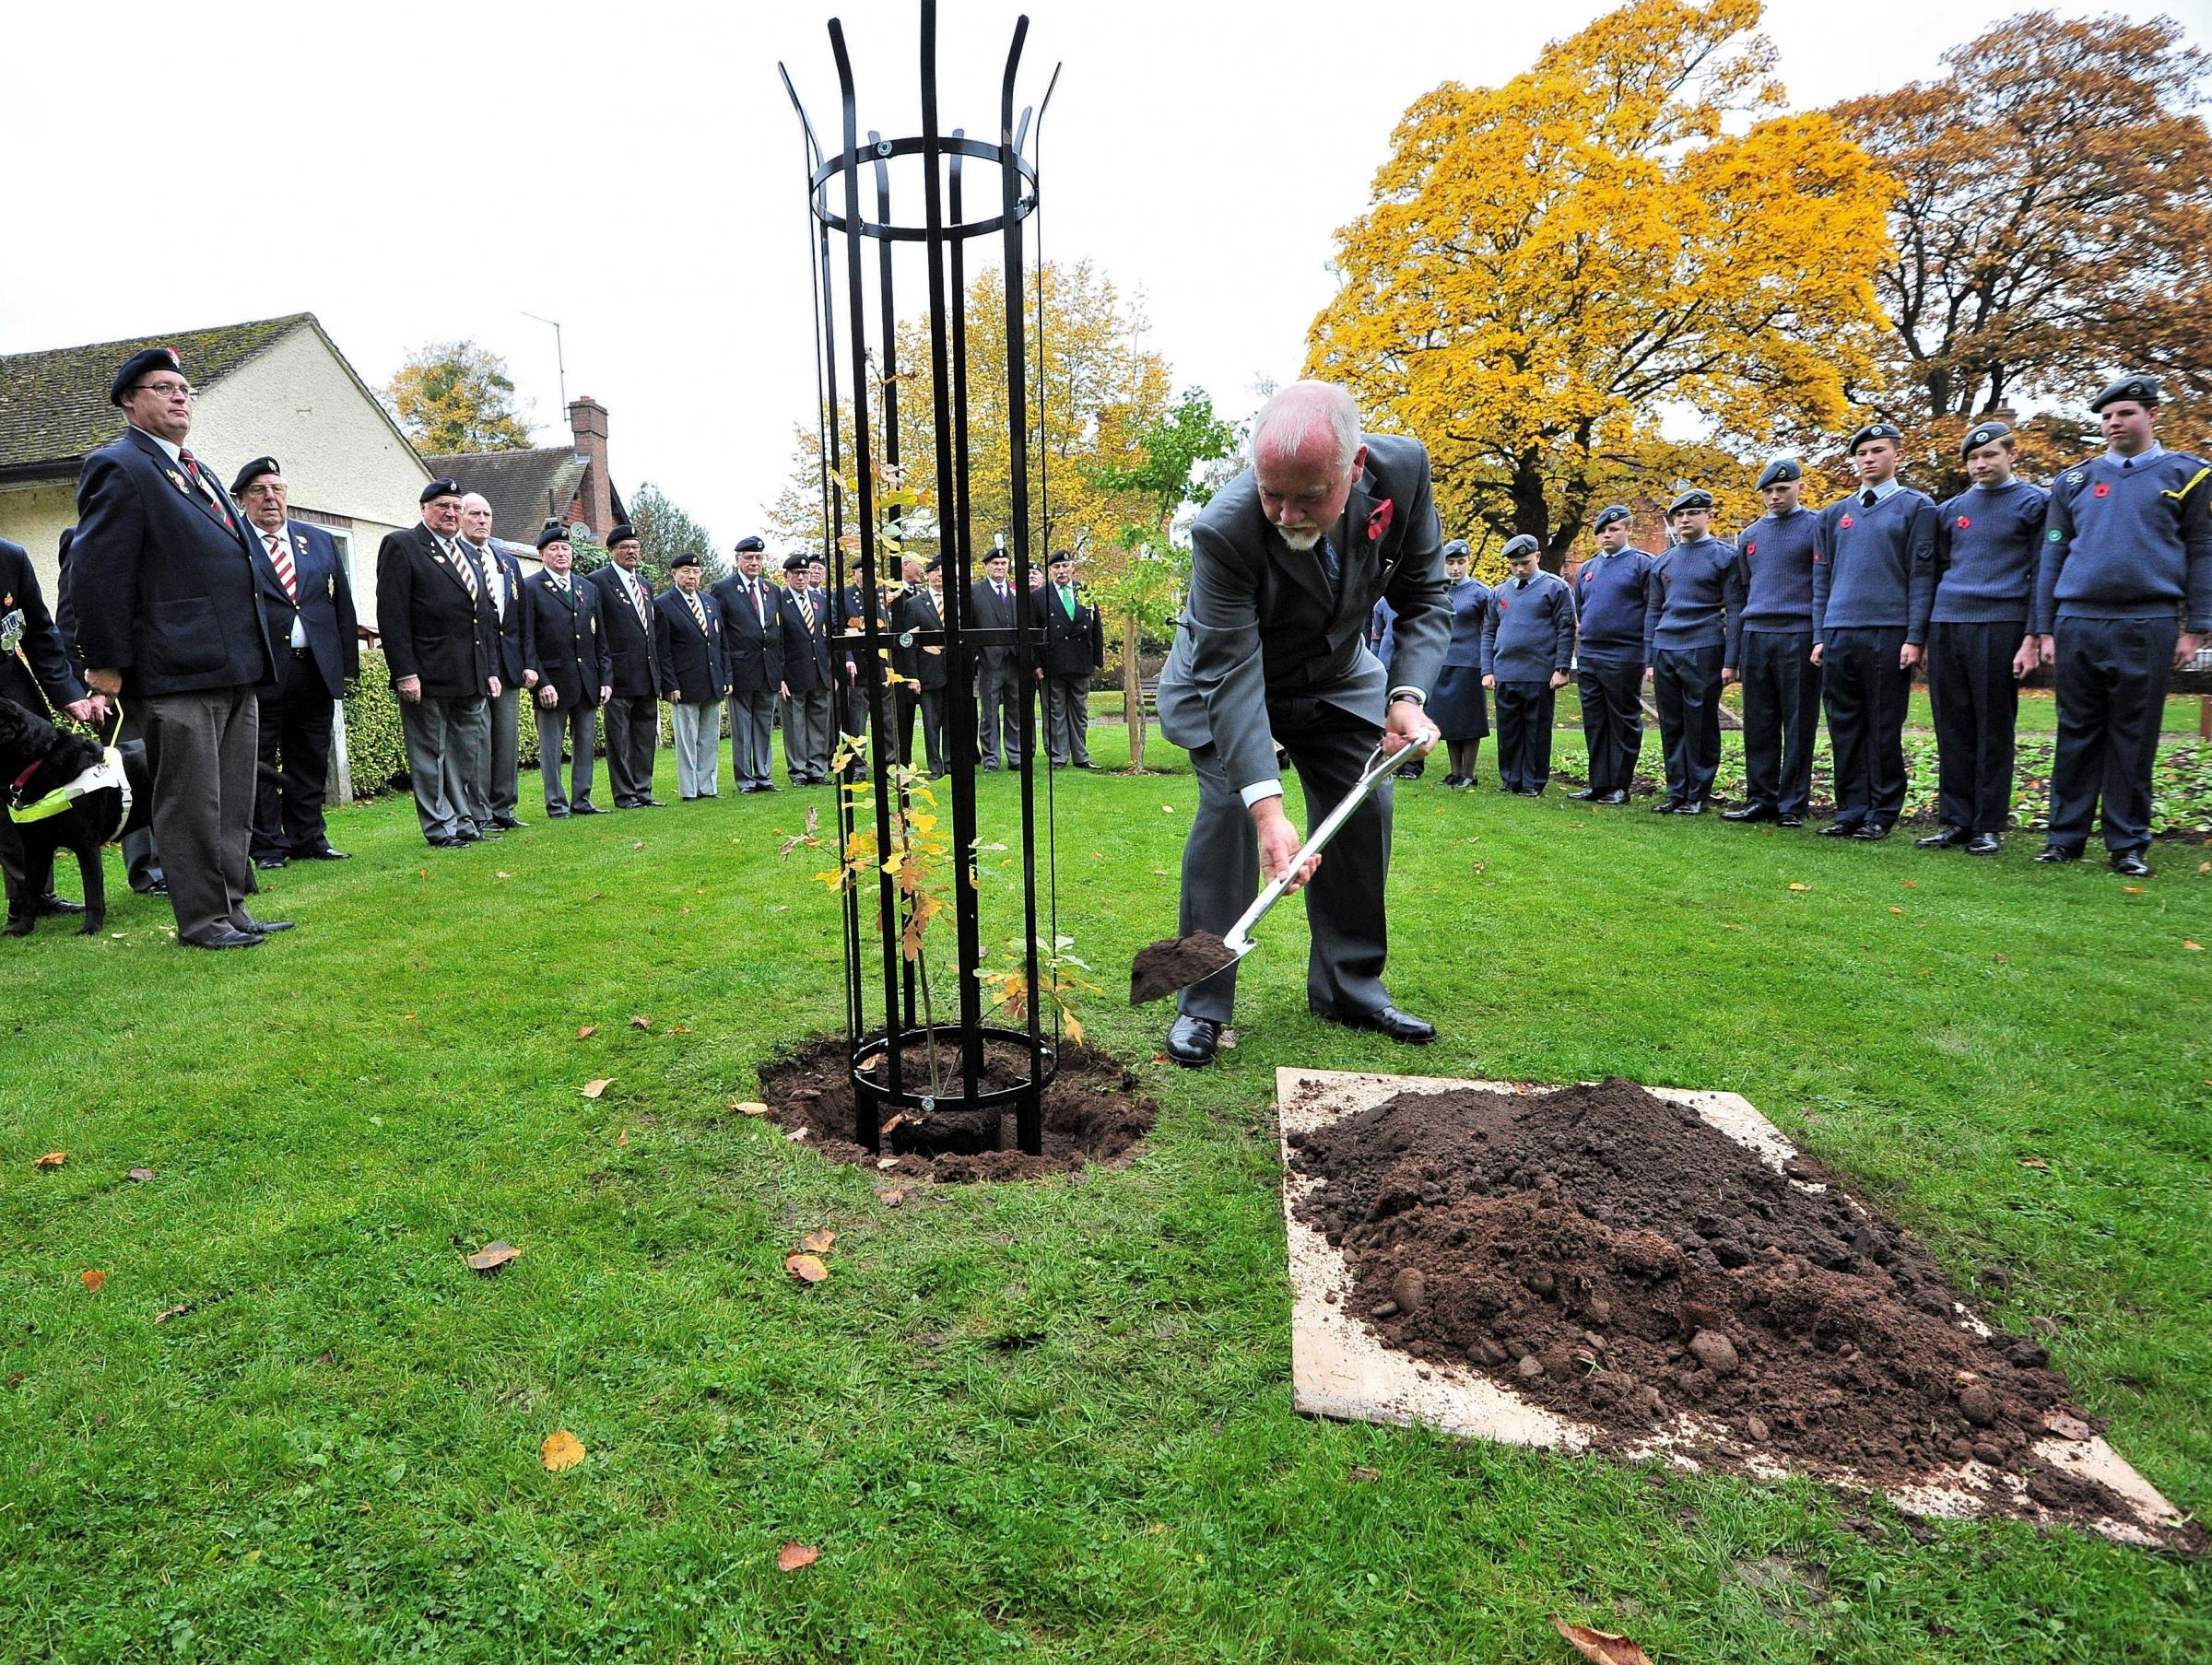 STEADY LAD: John Phillpott plants a tree to remember the fallen of the Nattle of Gheluvelt